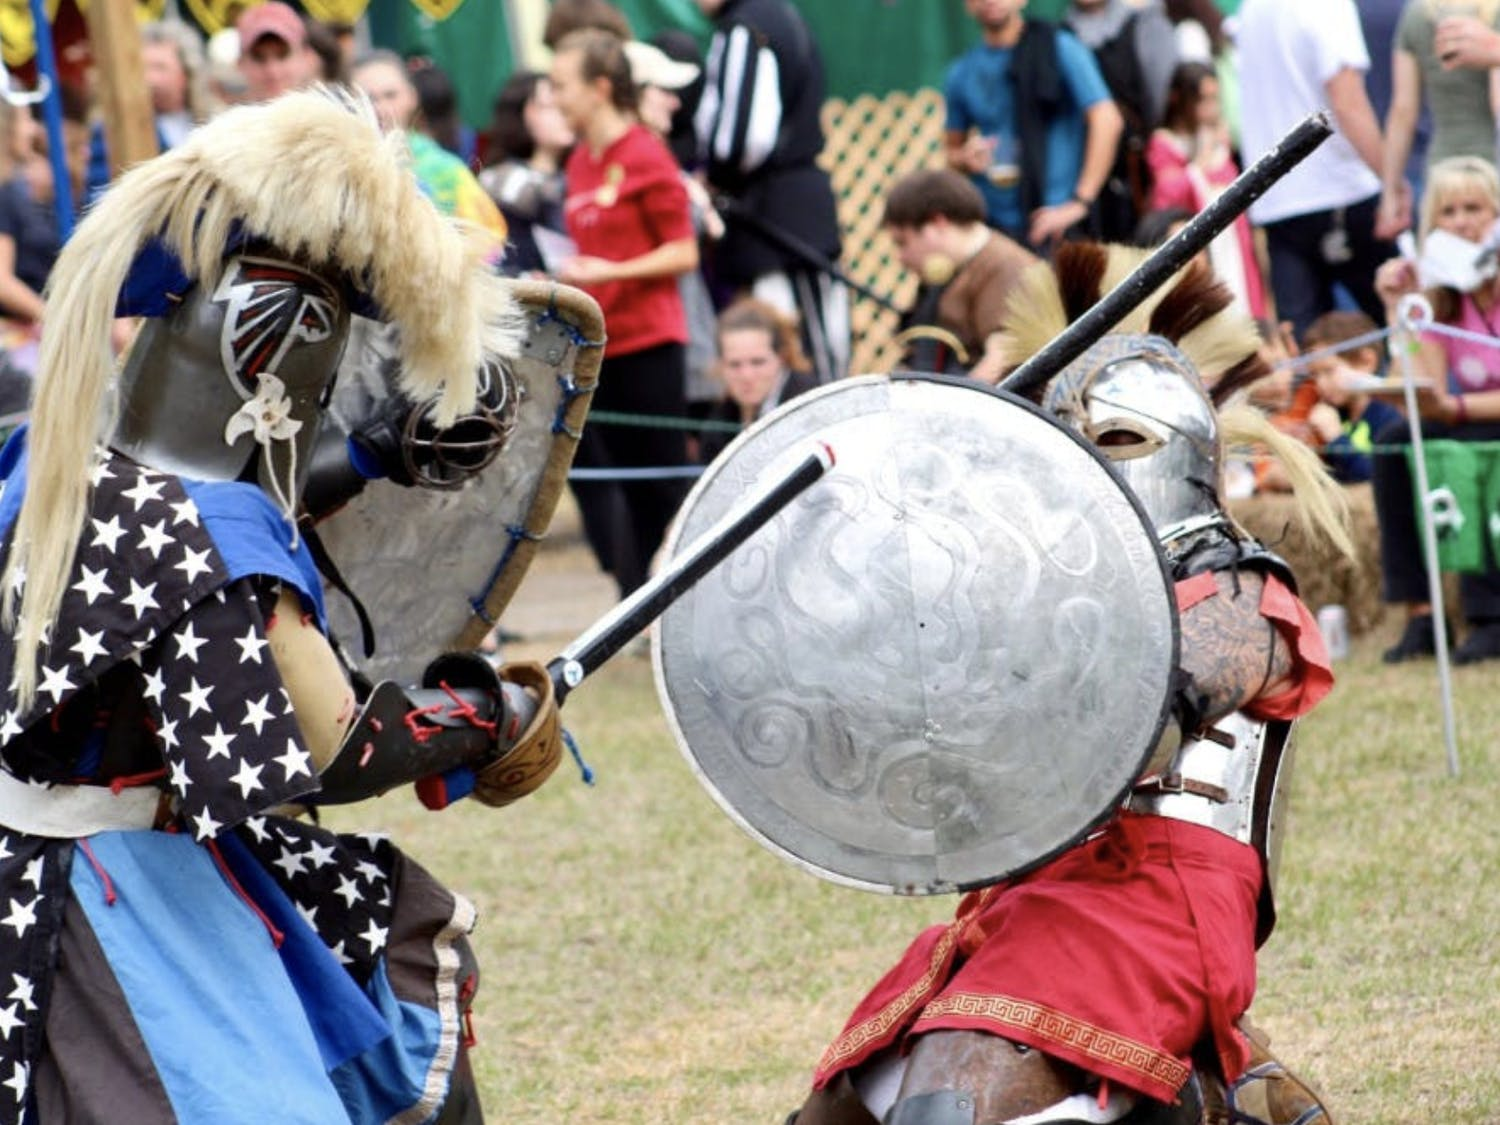 Knights joust at the 2018 Hoggetowne Medieval Faire.